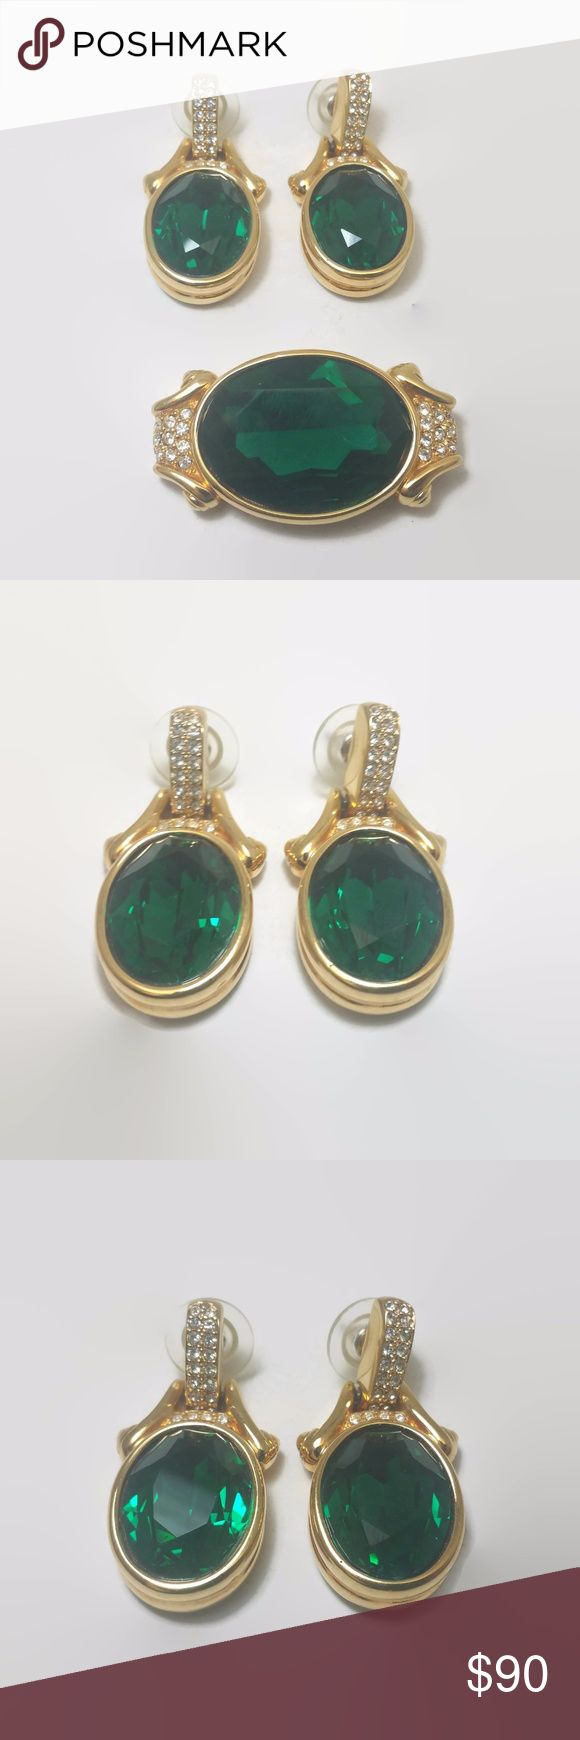 """Swarovski Gold Tone Green Crystal Pin & Earrings This is an absolutely gorgeous signed Swarovski (swan logo) gold tone pin and earrings set.  Each are set with a faceted emerald green color crystal flanked by smaller, sparkling clear stones.  The earrings measure 1.5""""l. x .75""""w. and are for pierced ears.  The brooch measures 1""""l. x 1.75""""w. Swarovski Jewelry Earrings"""